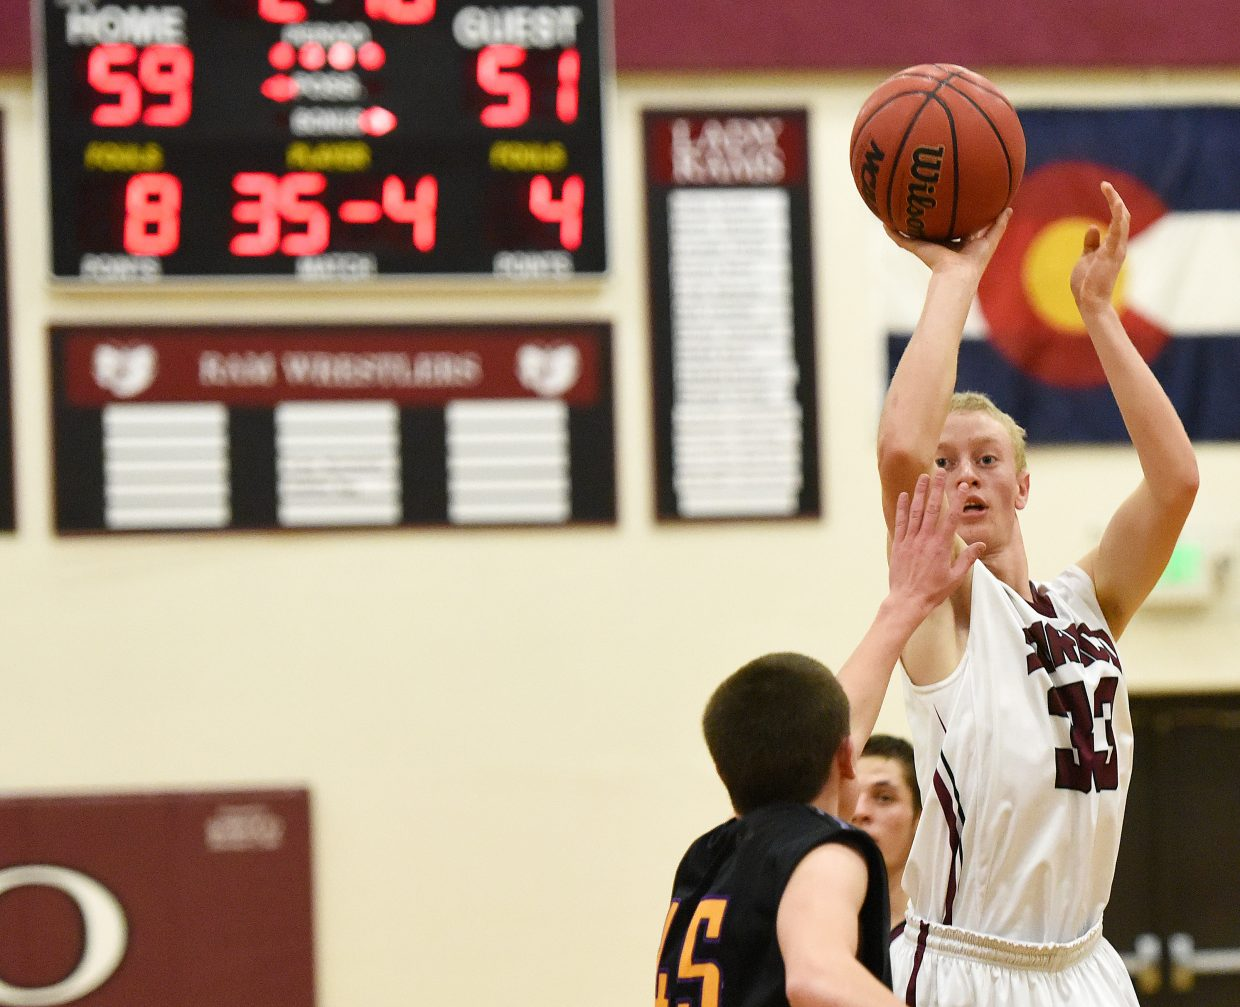 Warren Hayes puts up a shot for Soroco on Saturday.